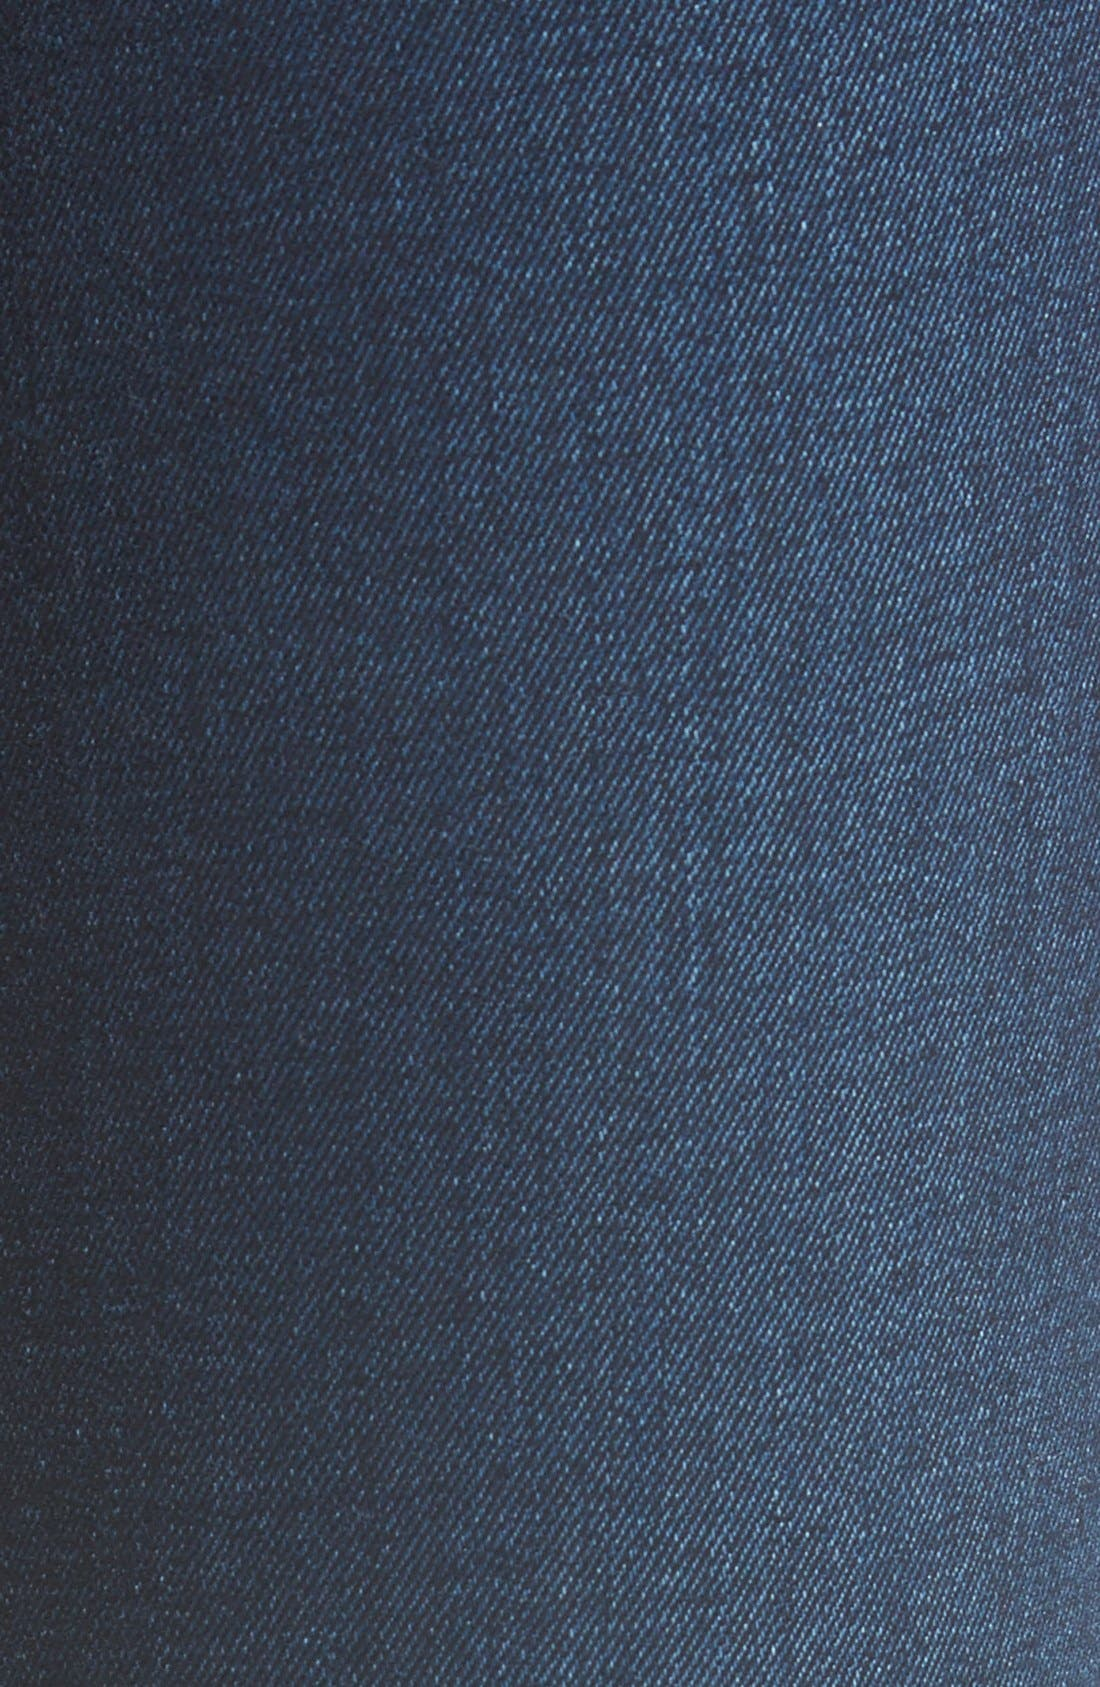 'Beth' Baby Bootcut Jeans,                             Alternate thumbnail 5, color,                             402